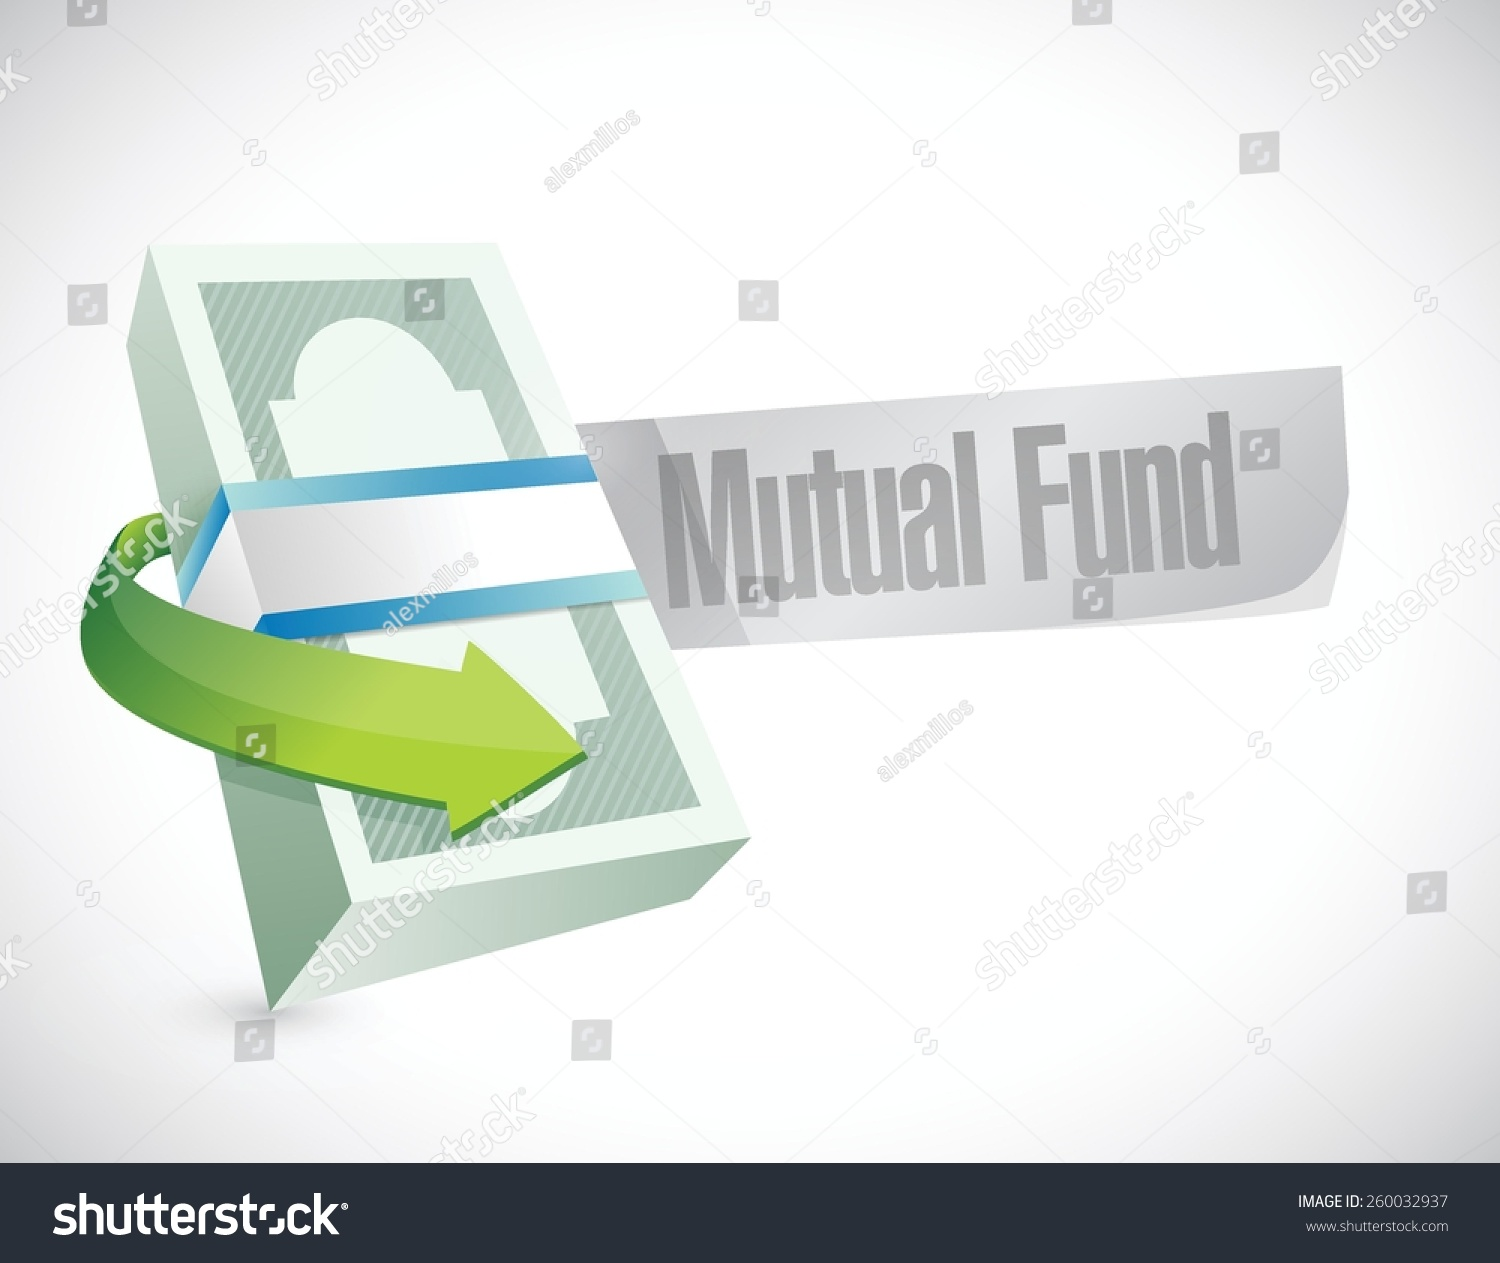 how to get mutual fund license ontario